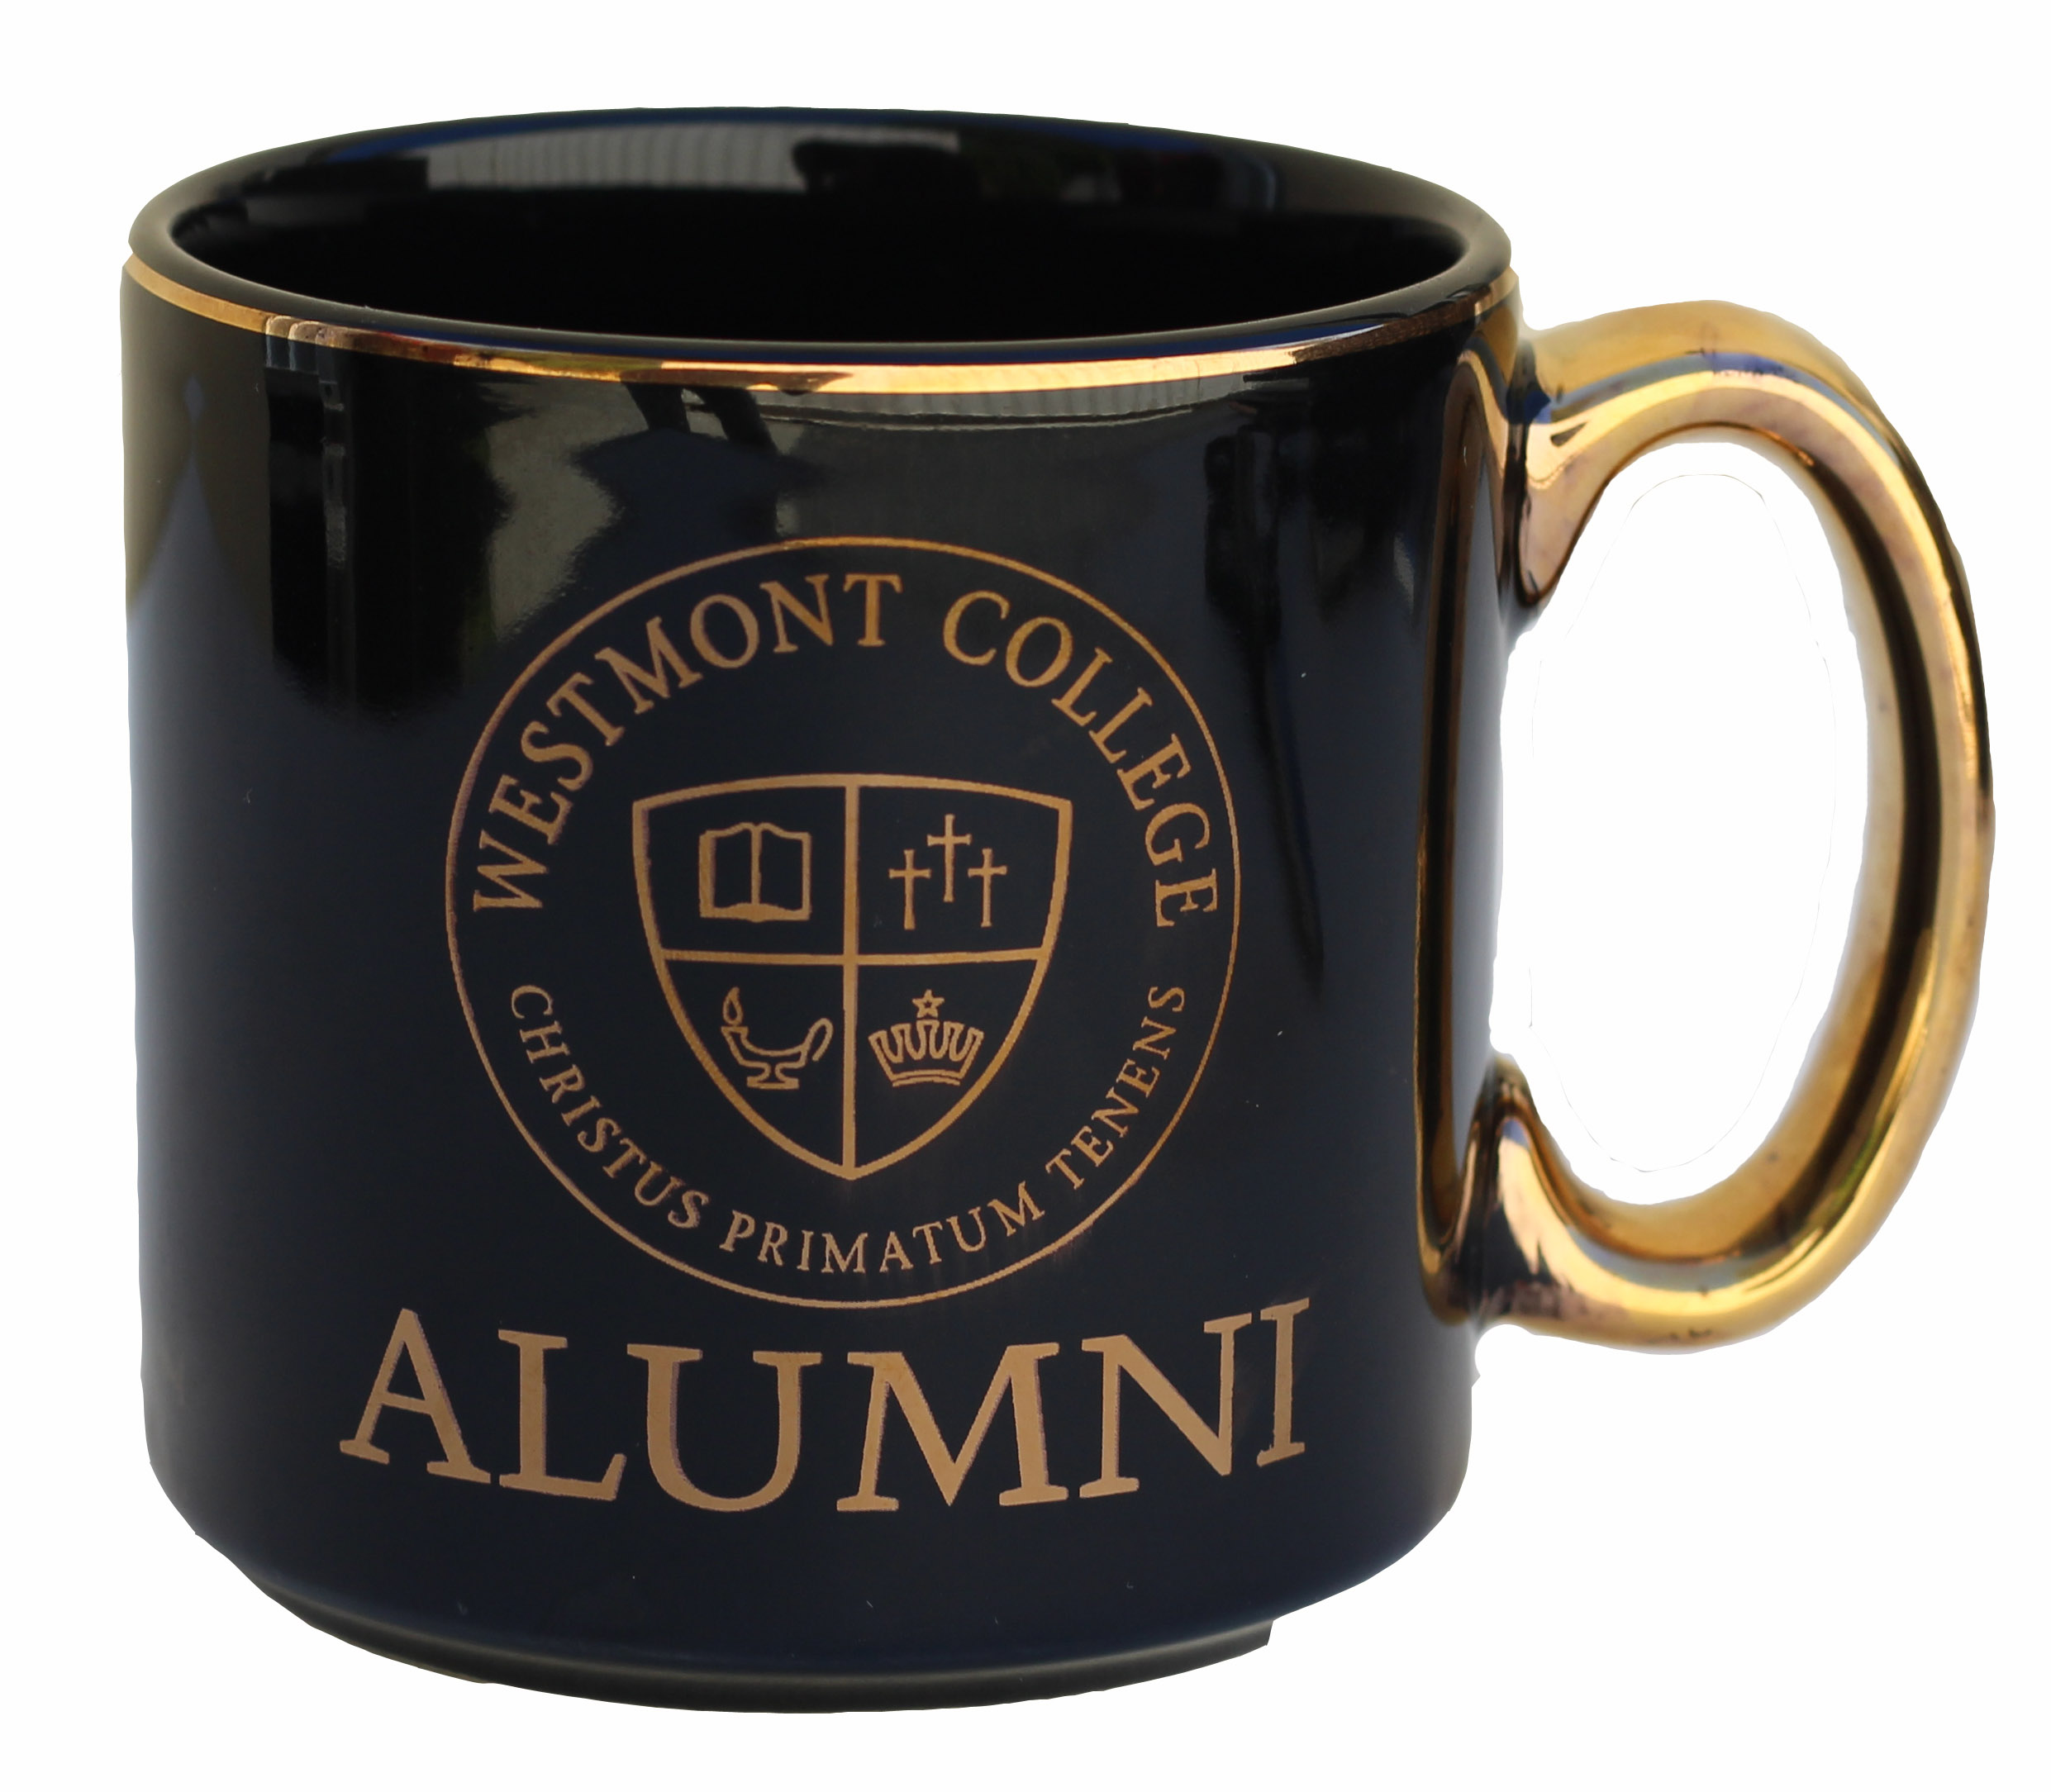 Image for the Black Alumni Mug product